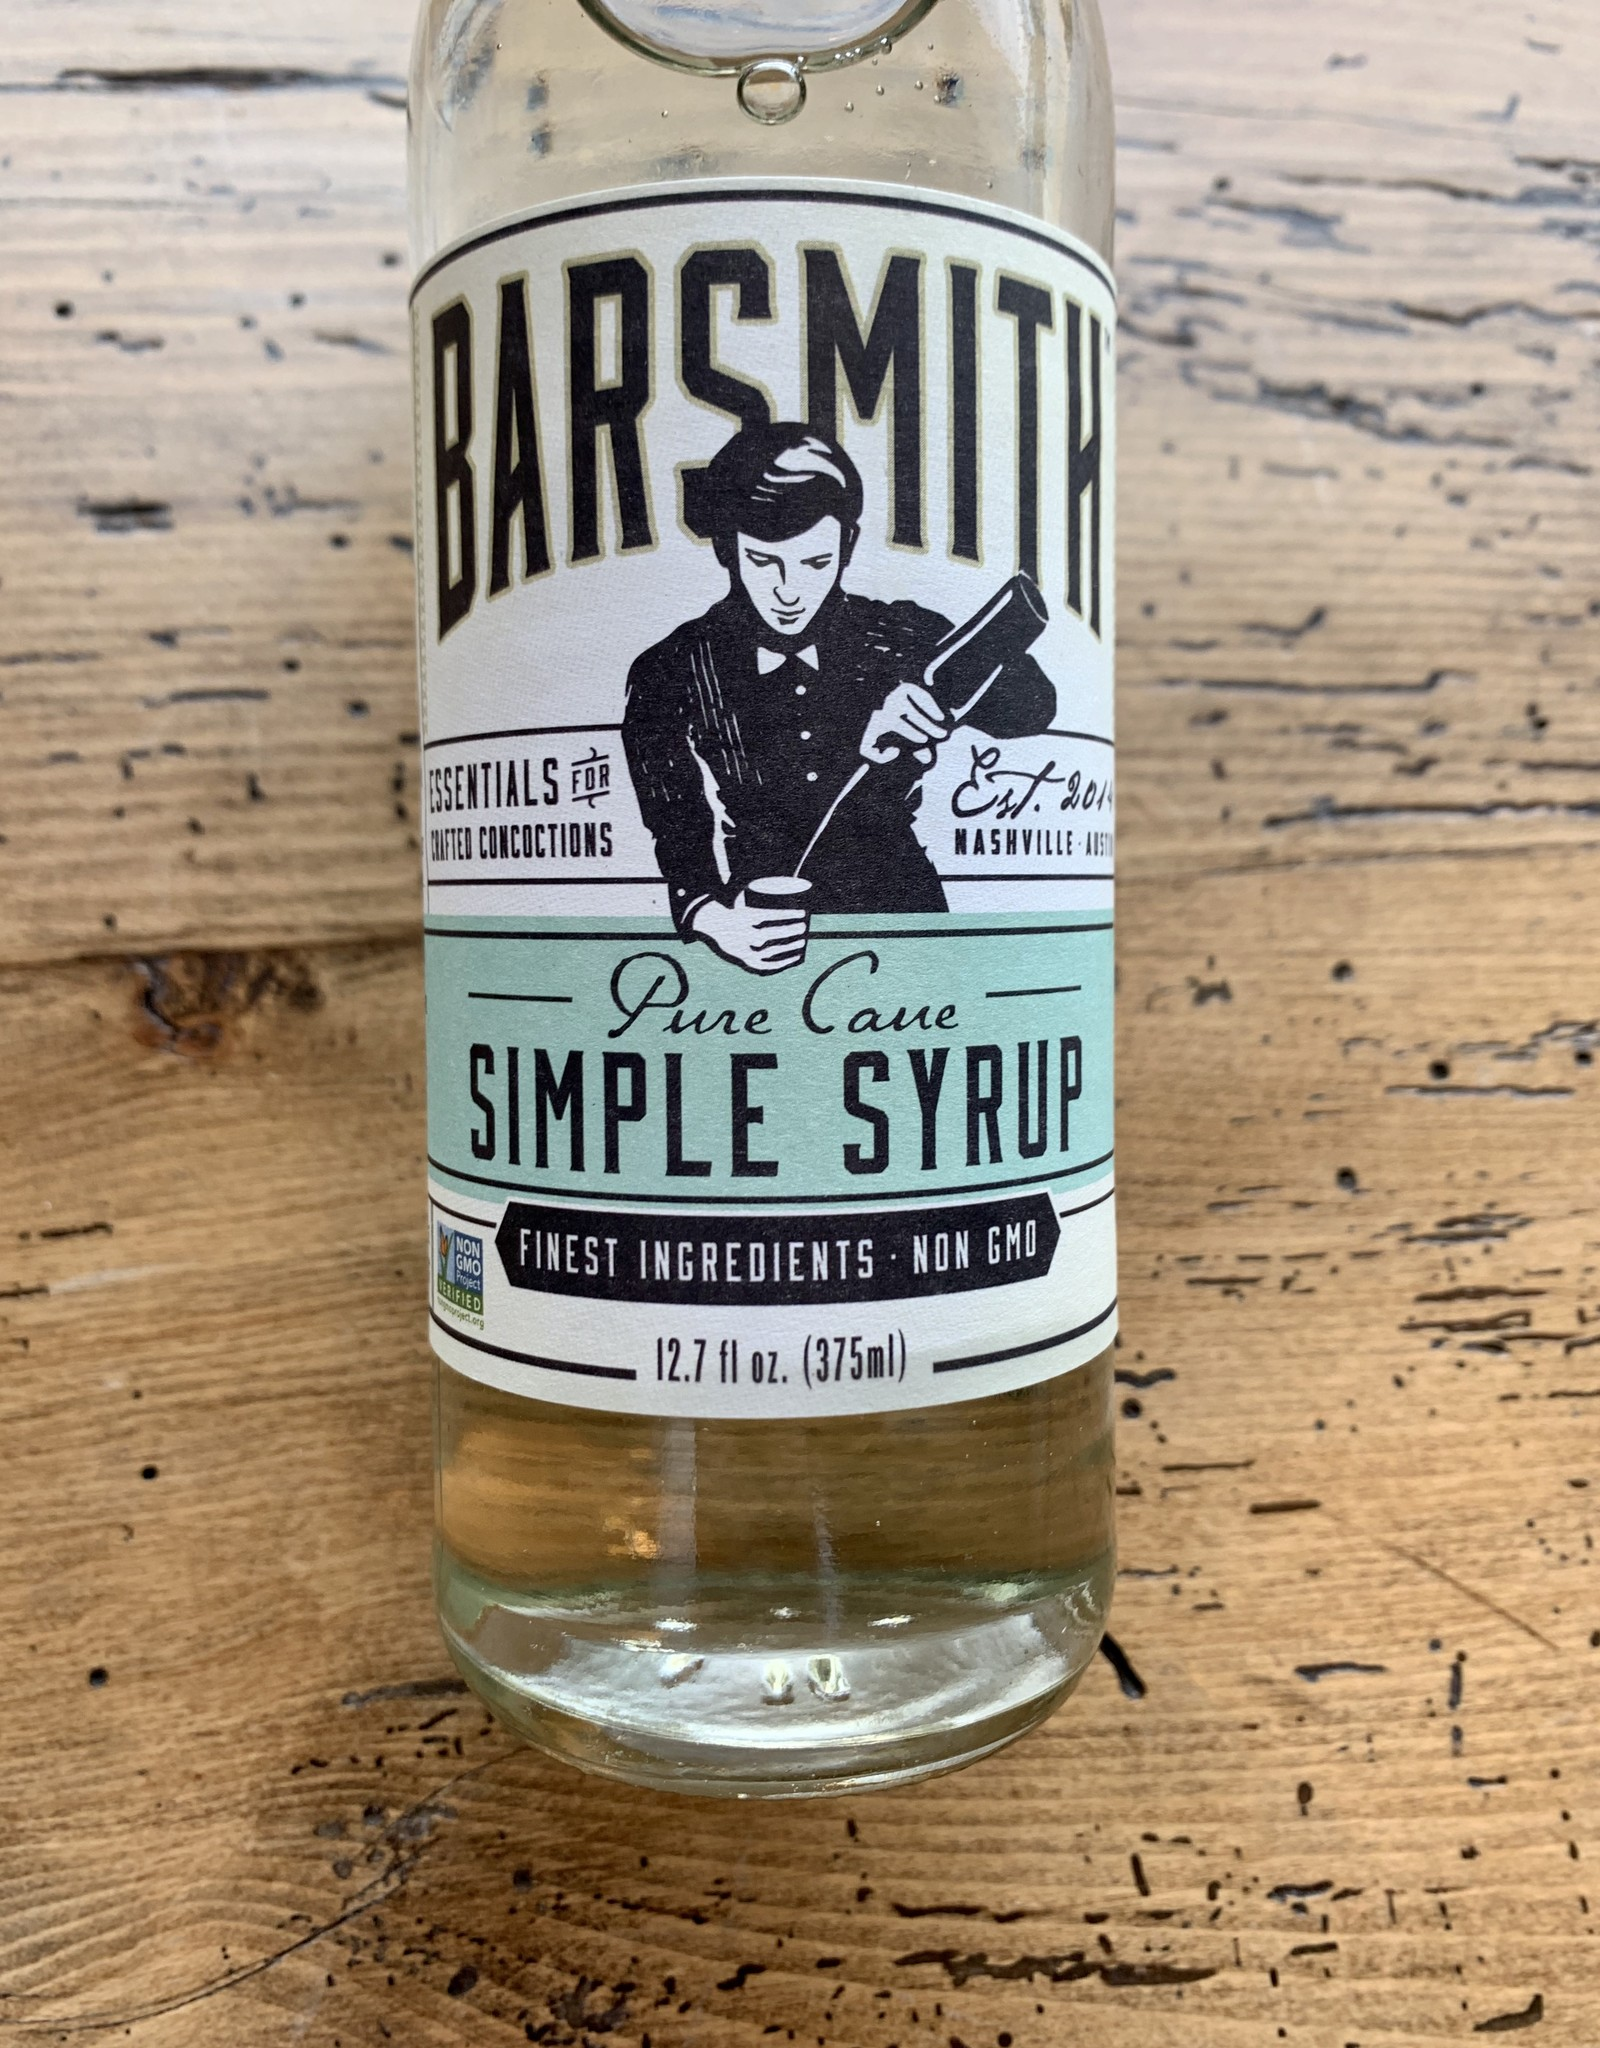 Barsmith Simple Syrup